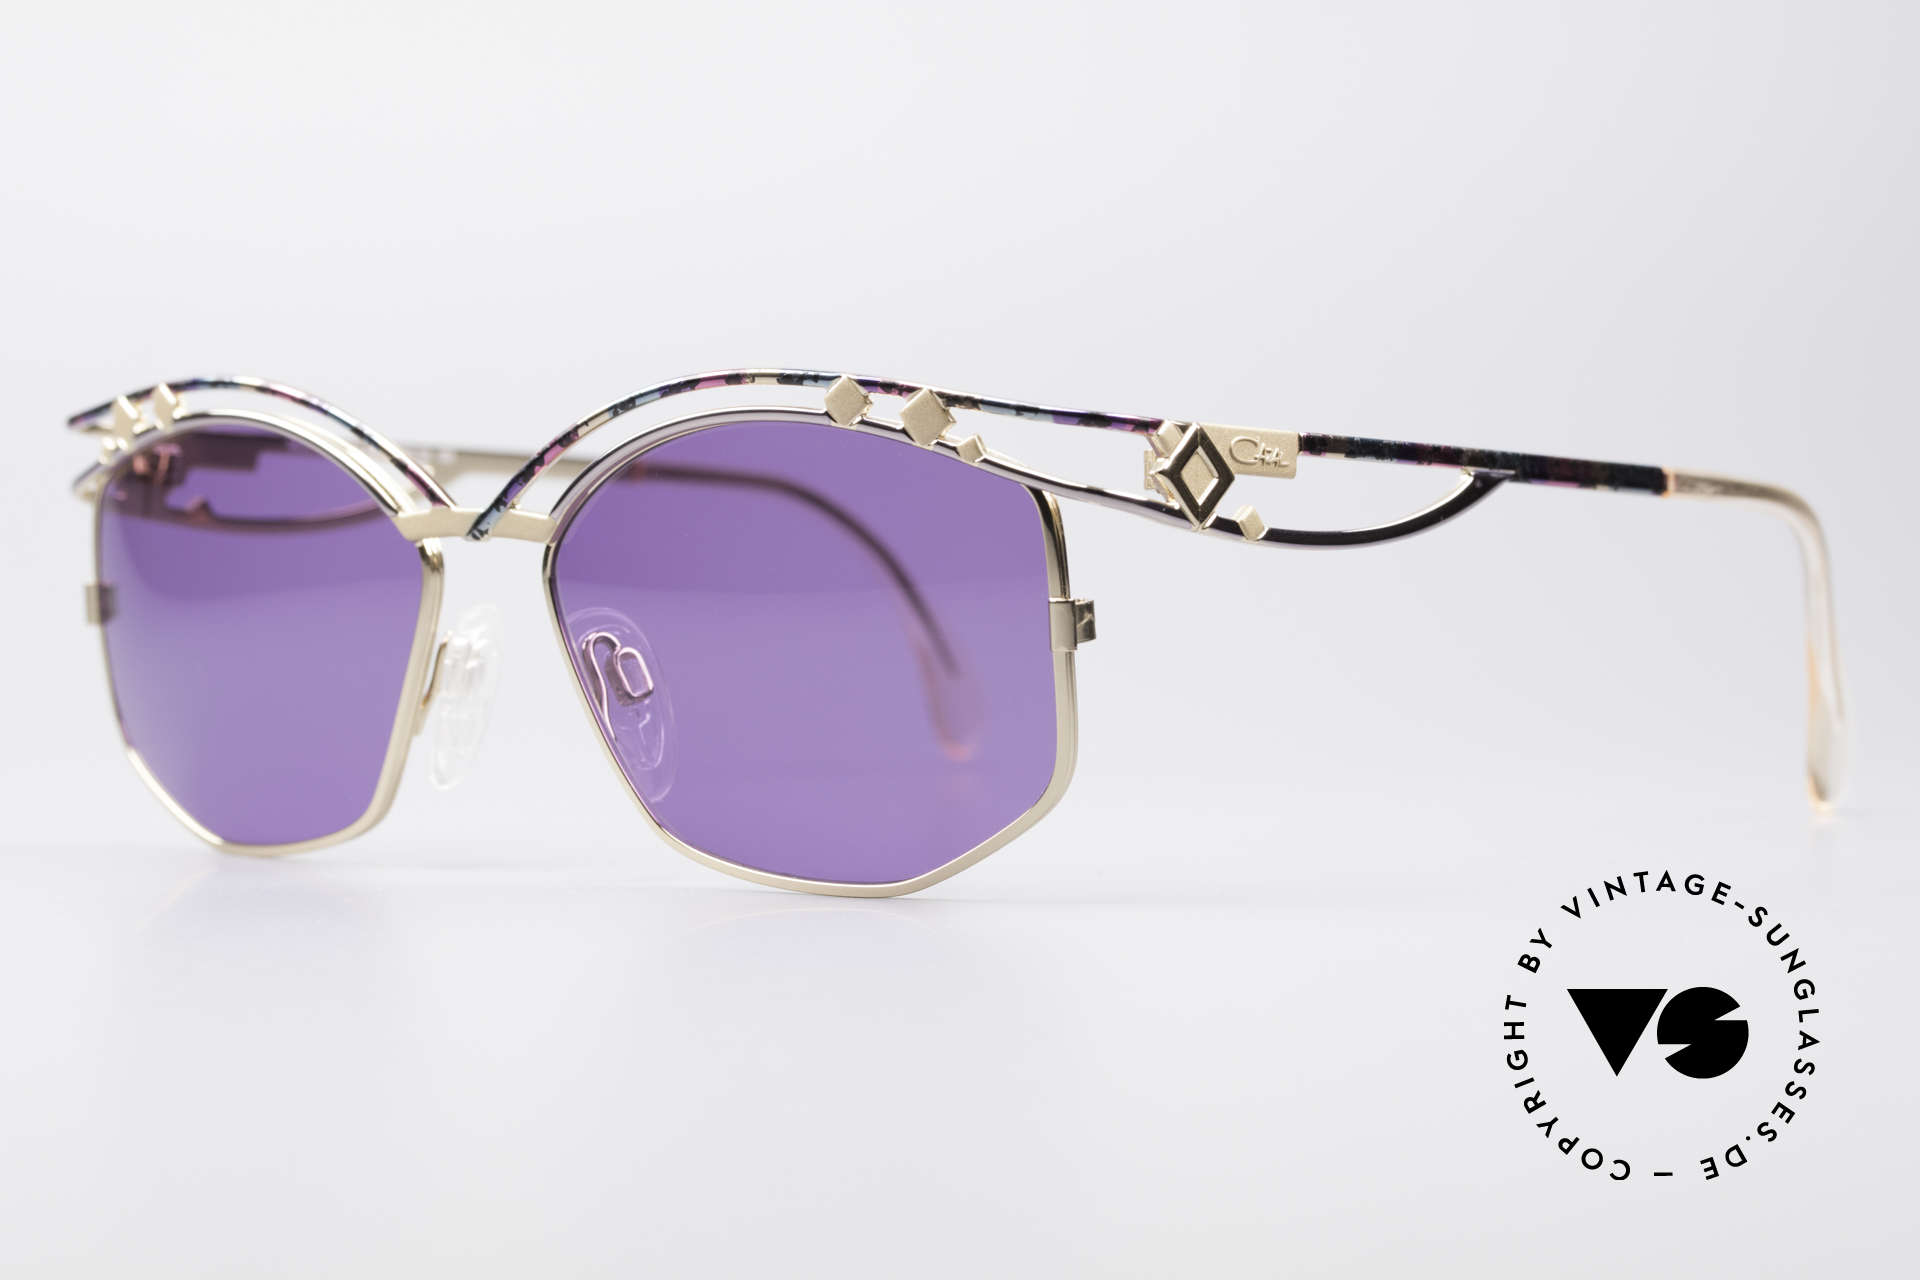 Cazal 280 90s Designer Sunglasses Ladies, true eye-catcher & high-end quality (frame Germany), Made for Women